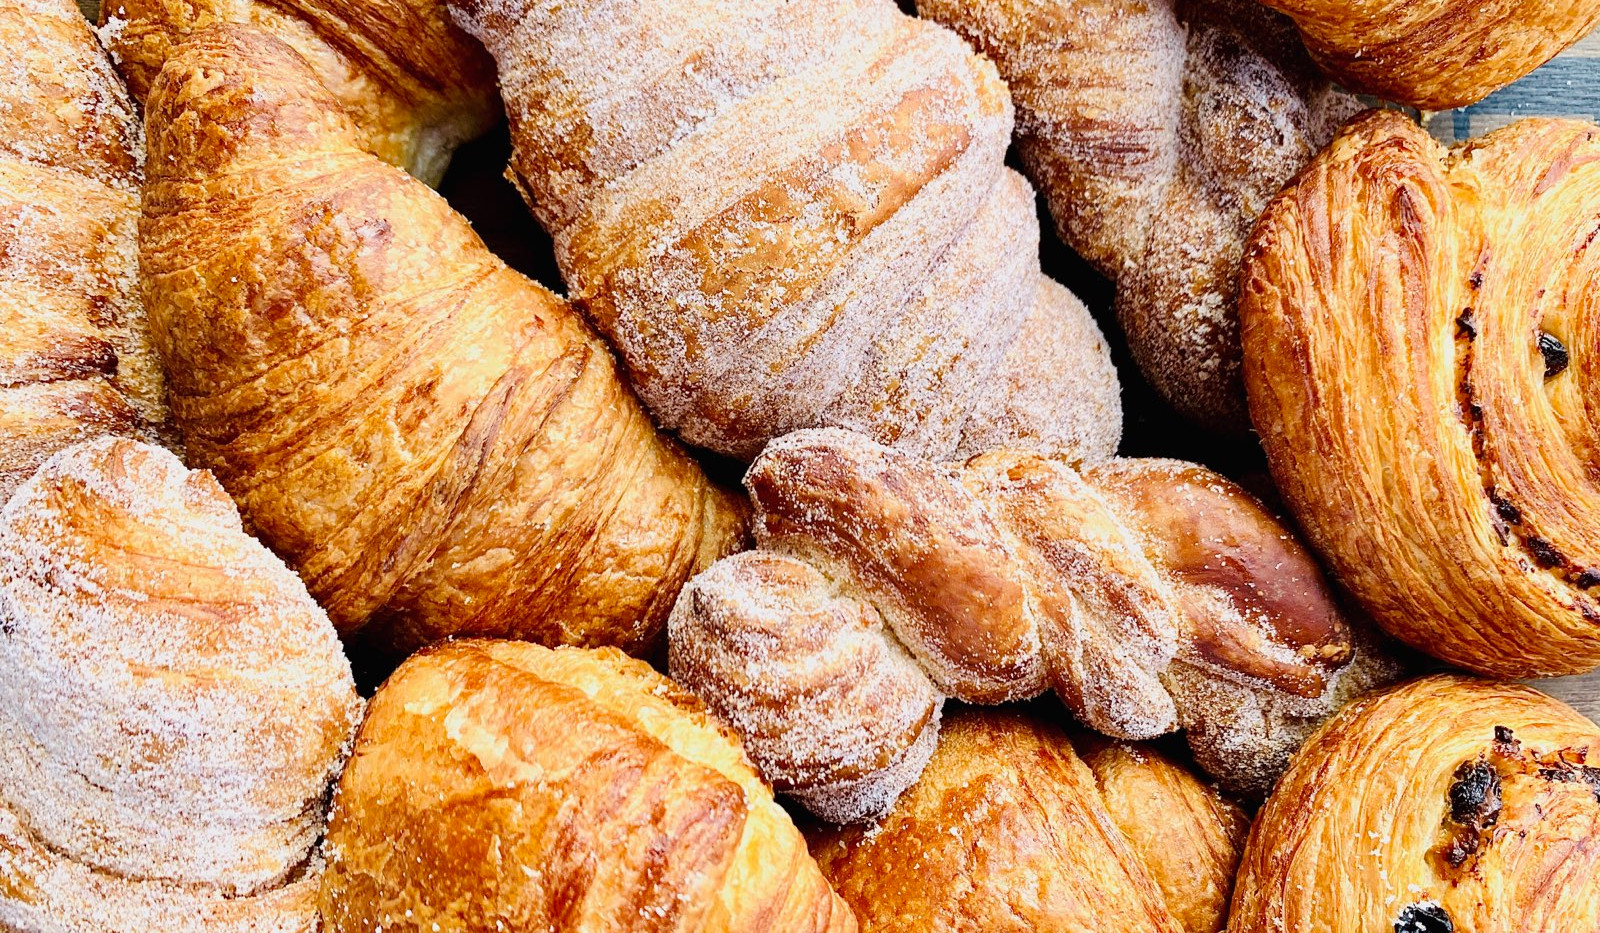 Specialty Croissants